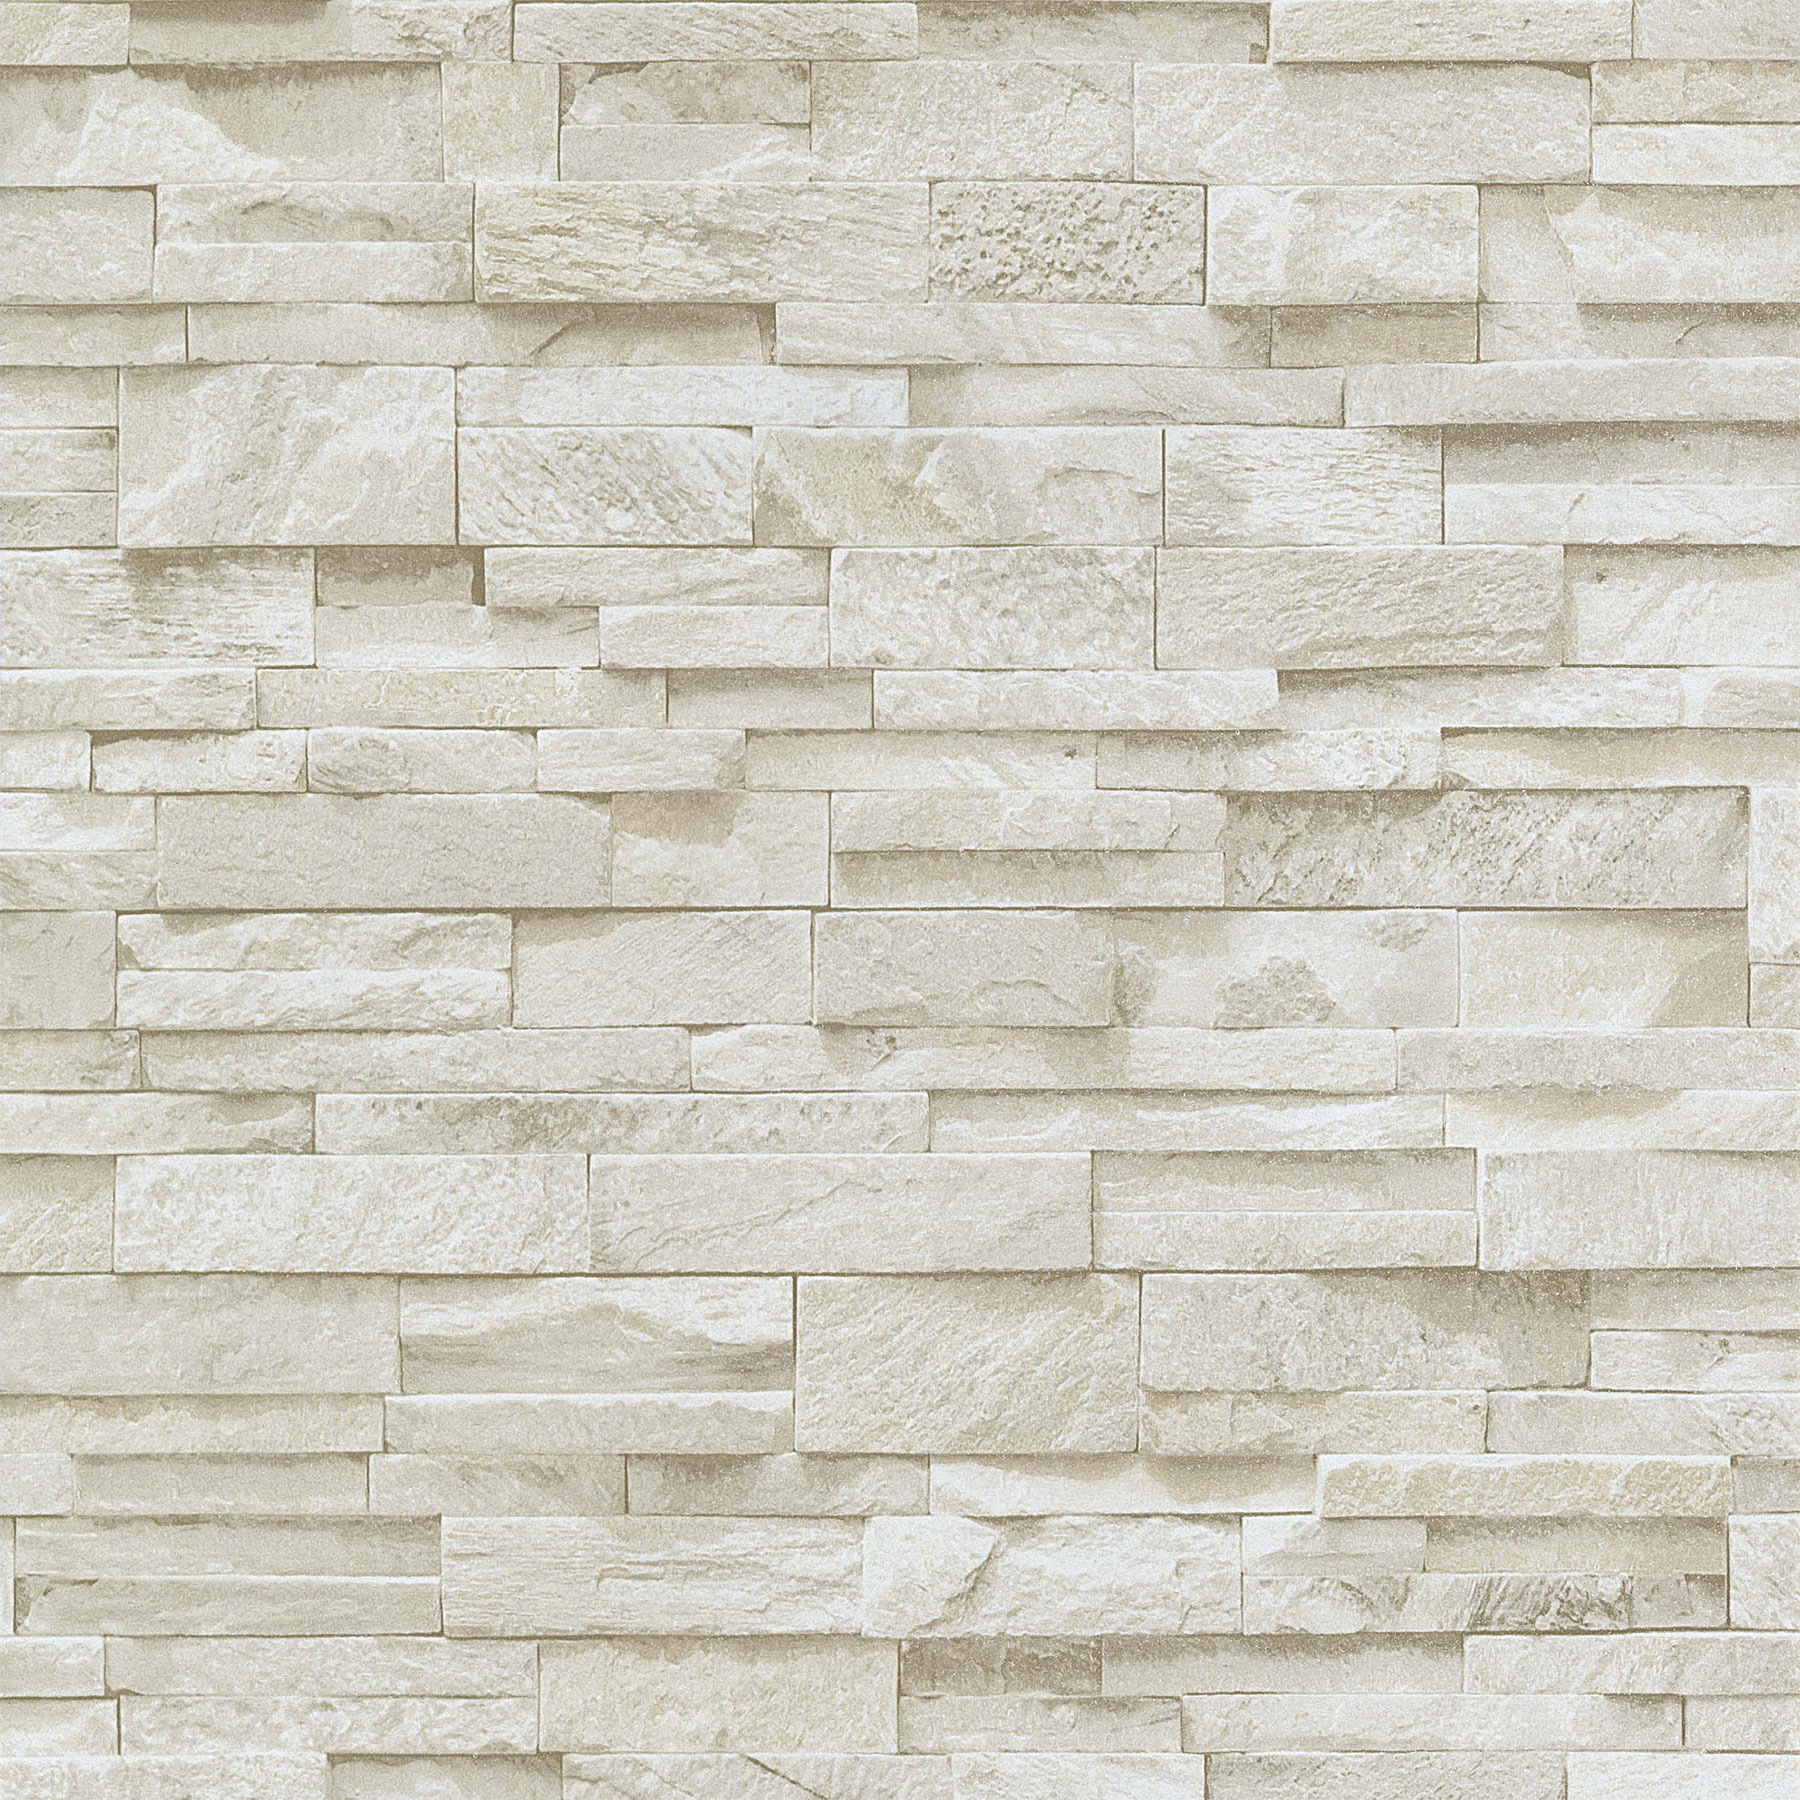 Cornish Stone Effect Wallpaper From B Q: Brick Effect Wallpaper Vinyl 3D Slate Stone Split Face